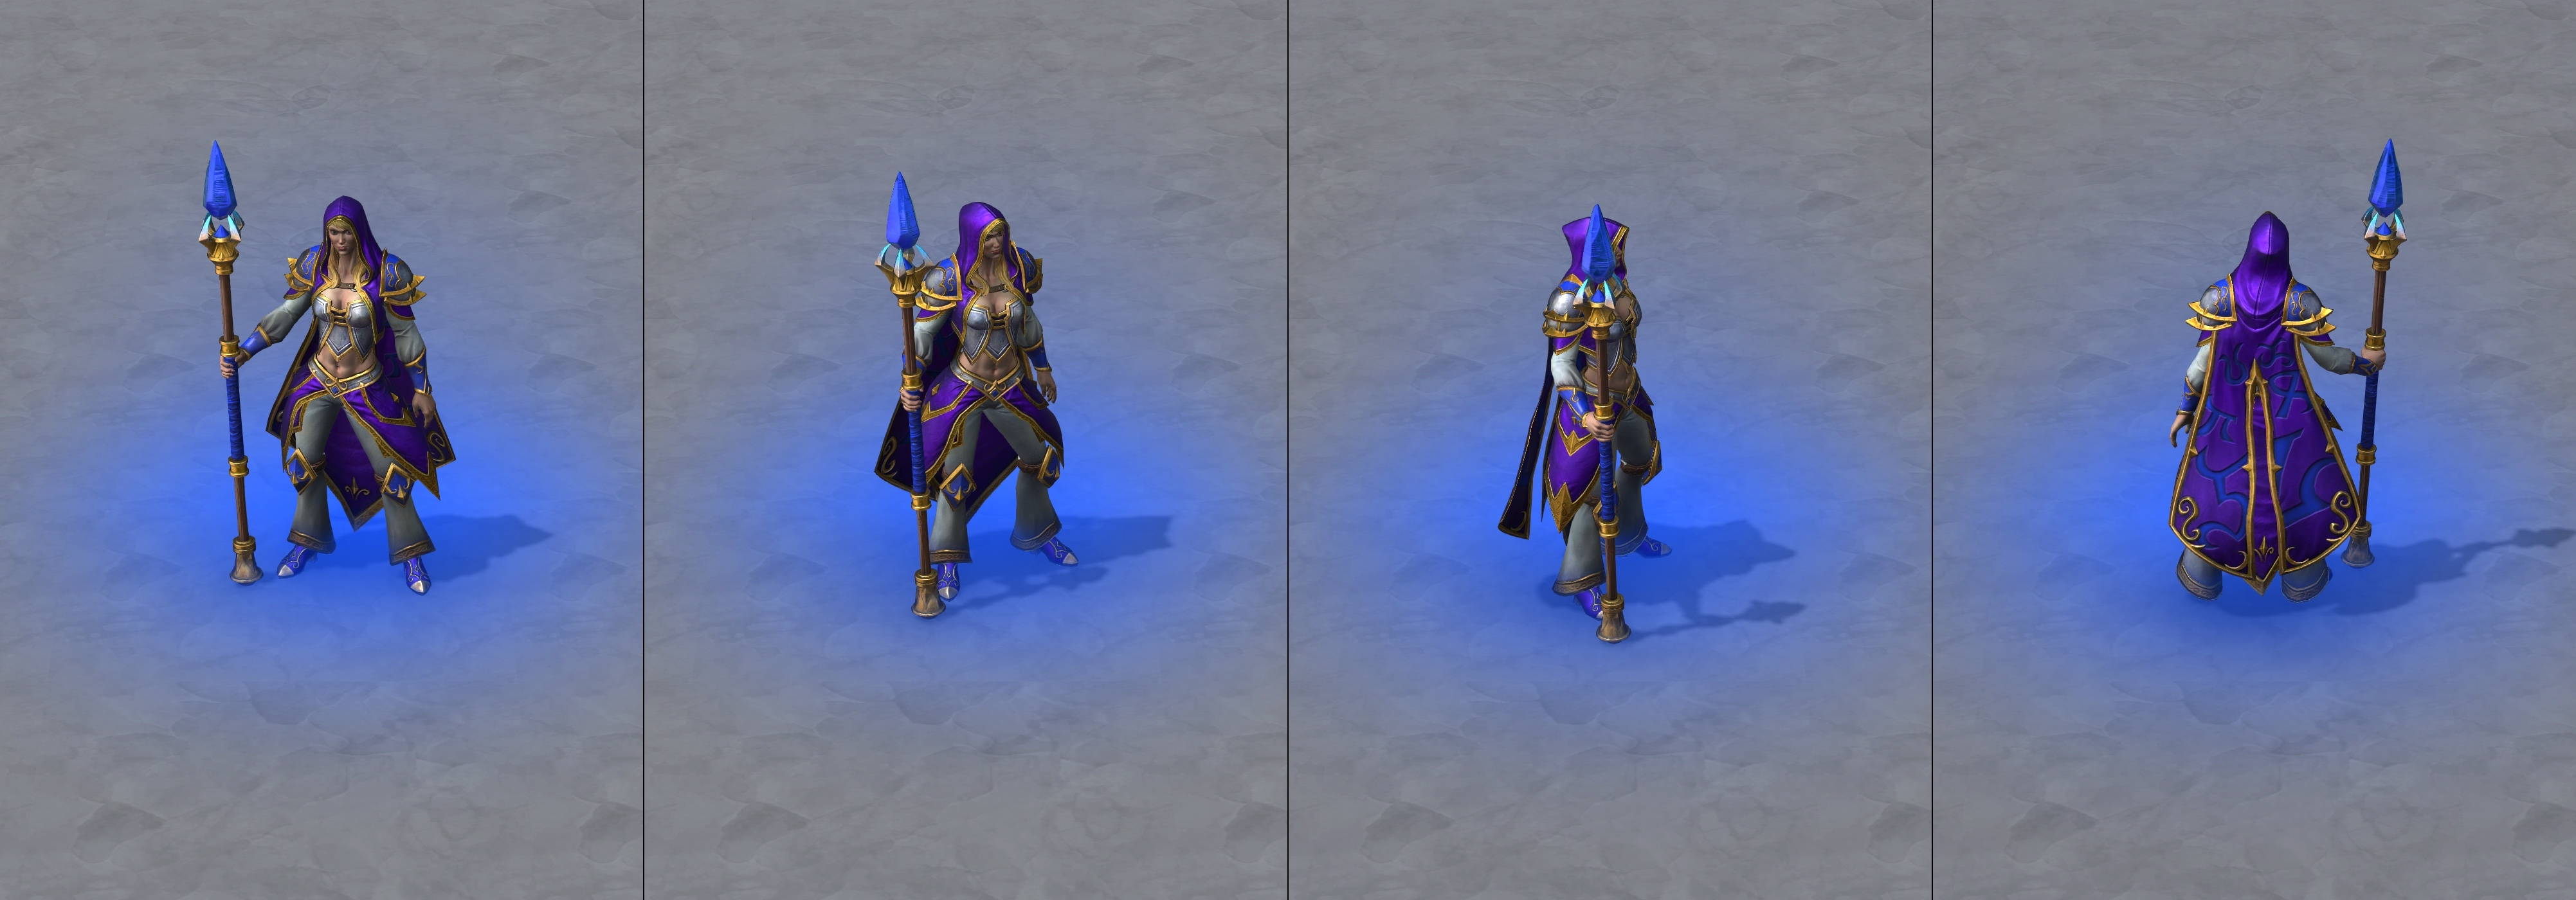 Daughter Of The Sea Jaina Warcraft Iii Reforged Skin Wc3